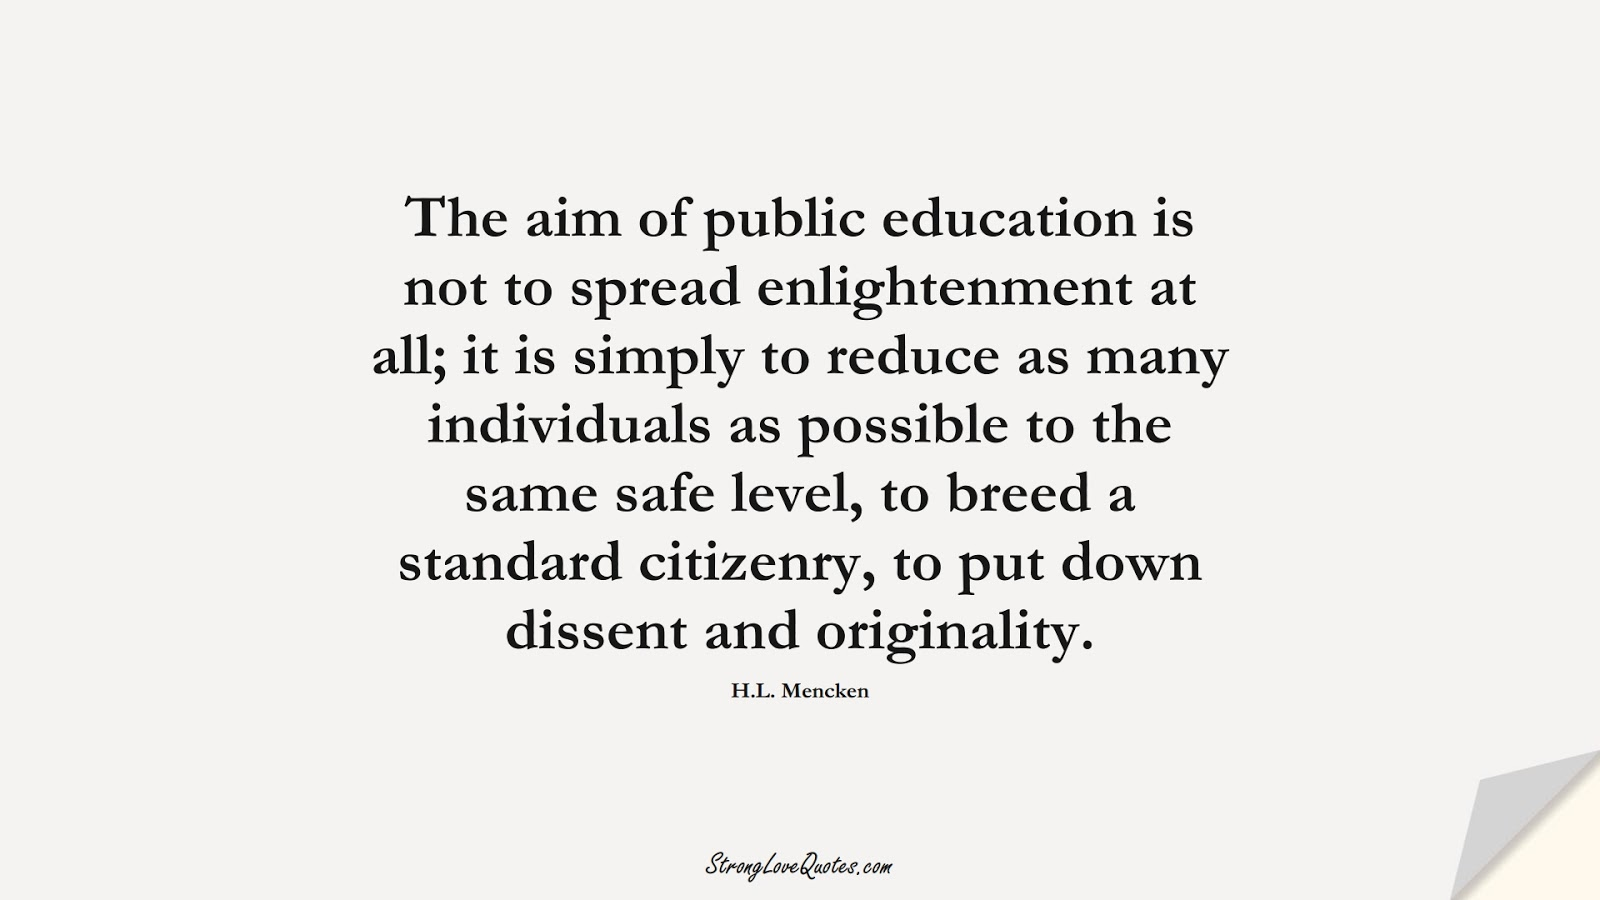 The aim of public education is not to spread enlightenment at all; it is simply to reduce as many individuals as possible to the same safe level, to breed a standard citizenry, to put down dissent and originality. (H.L. Mencken);  #EducationQuotes